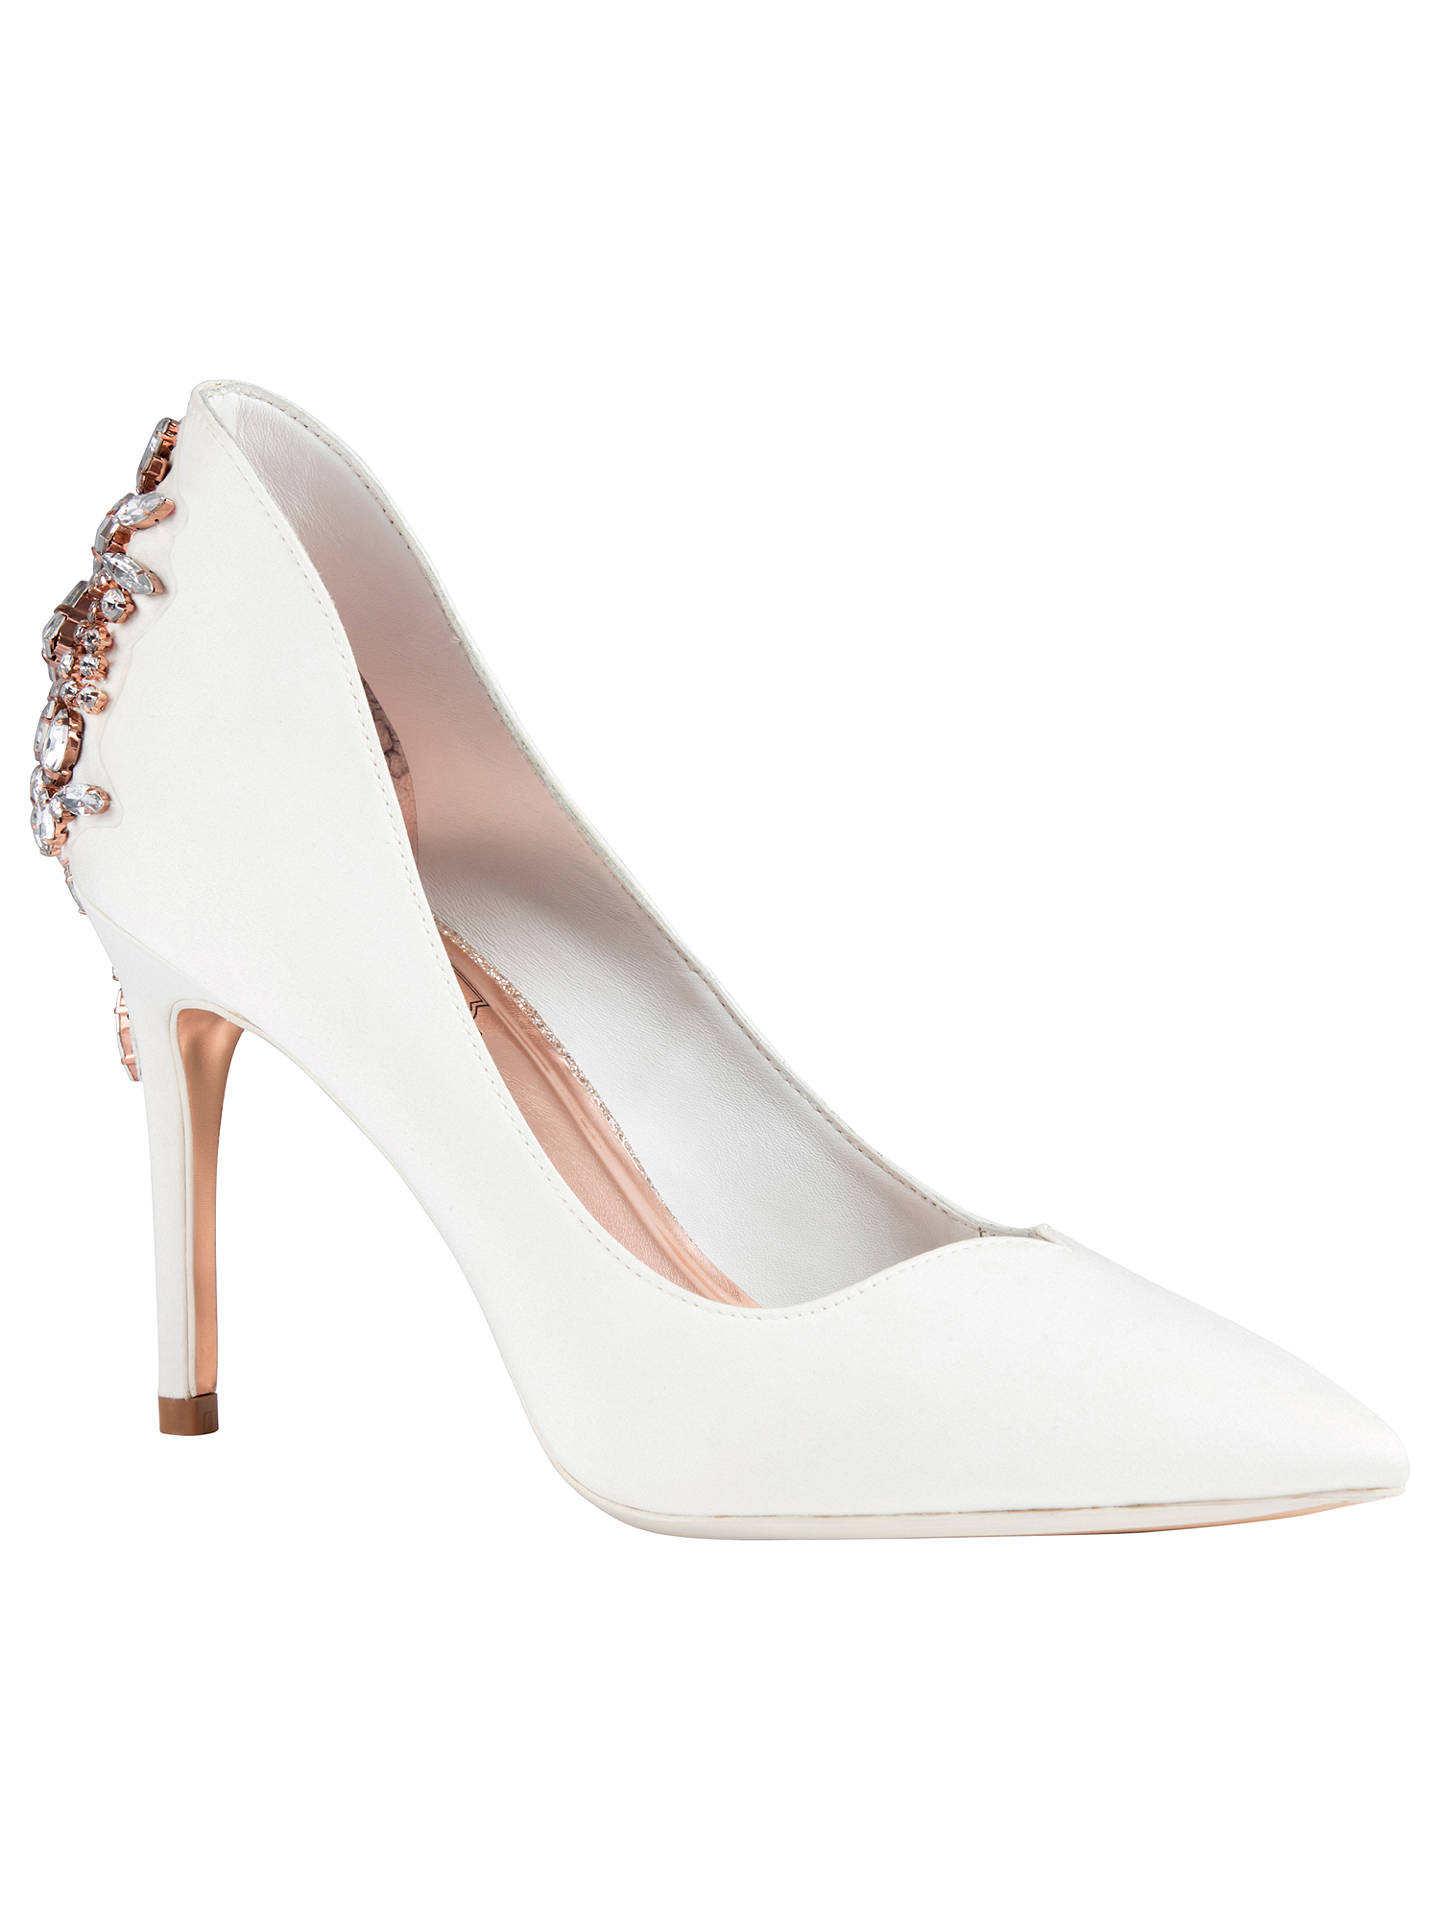 2faf0d560899 Buy Ted Baker Finoula Embellished Court Shoes